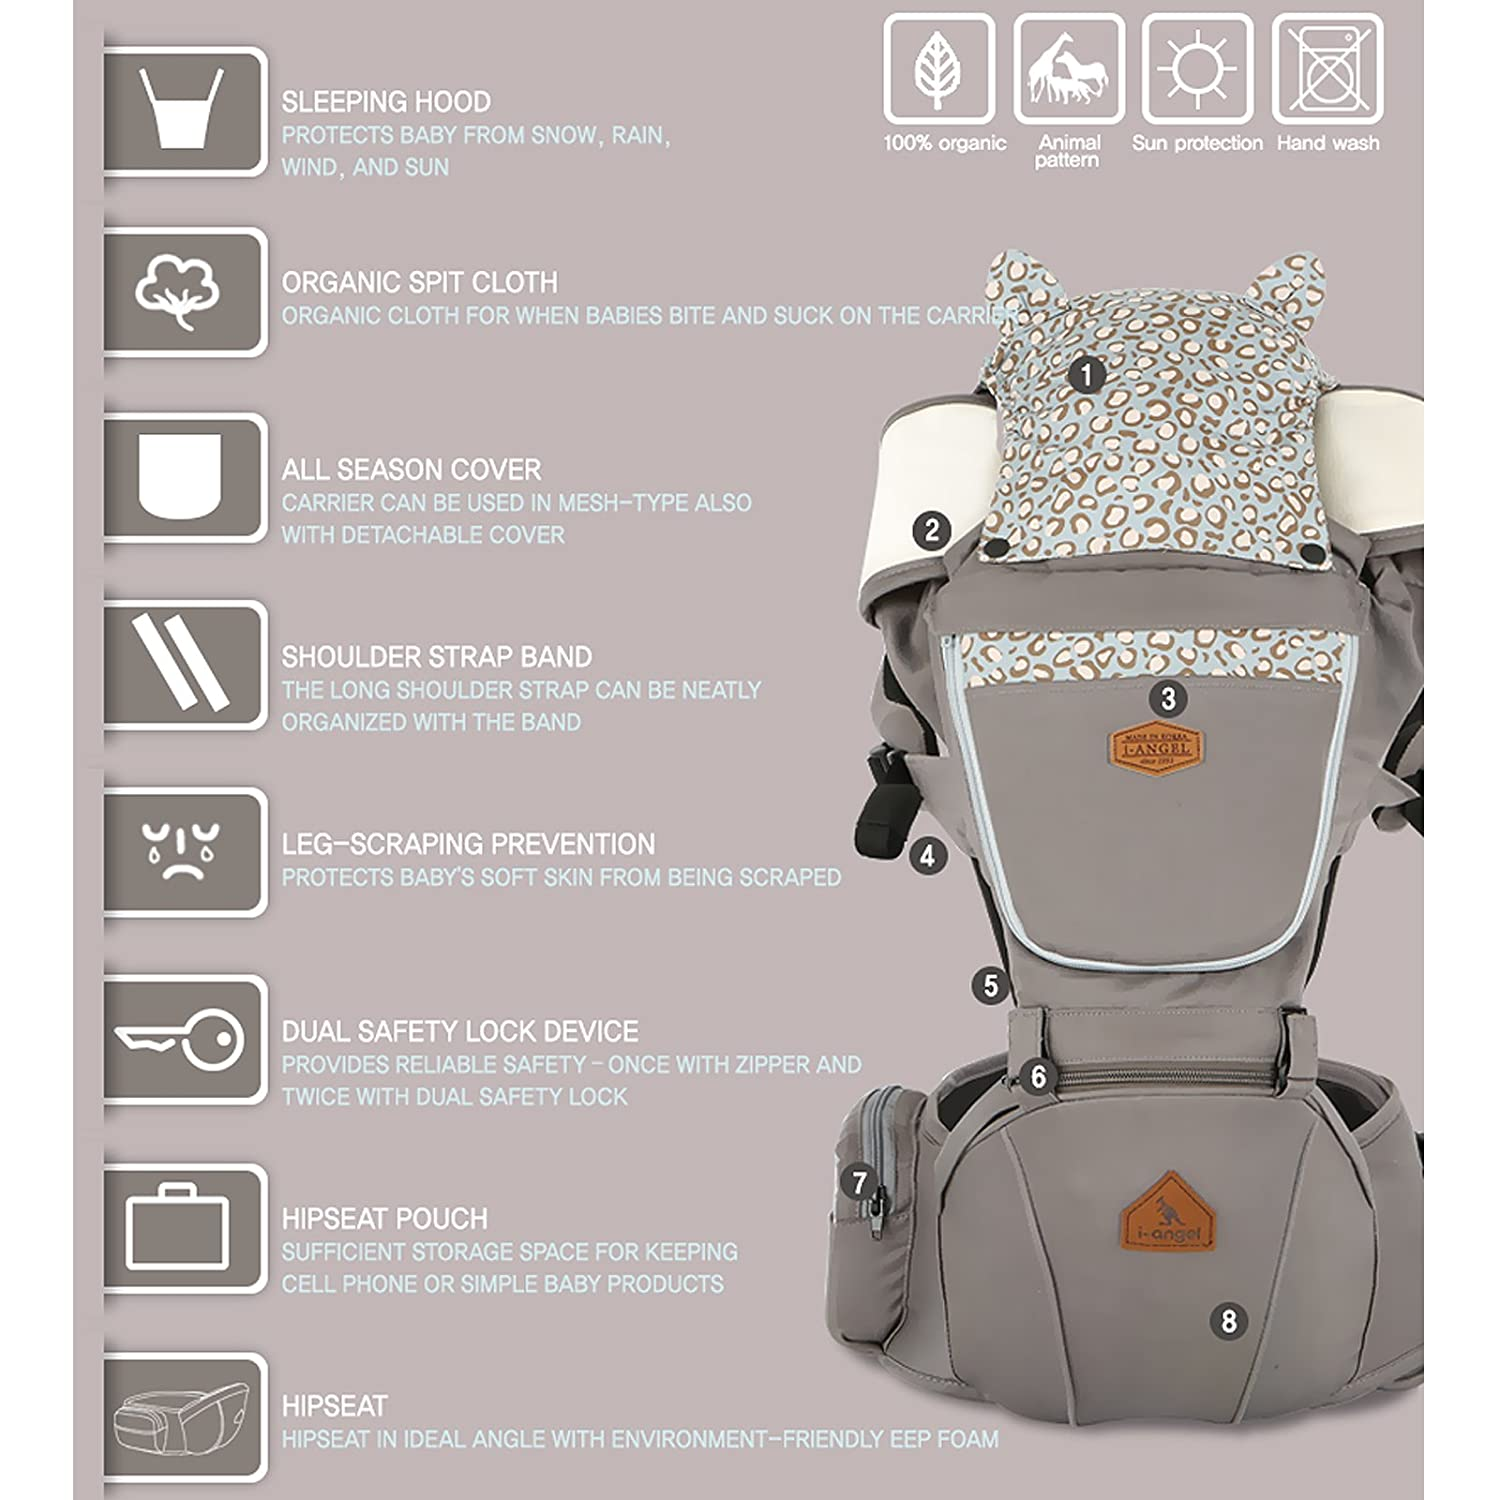 Amazon.com : Animal Hipseat + Baby Carrier/THE DADS AWARDS SILVER WINNER-BEST BABY CARRIER (Camel) : Baby